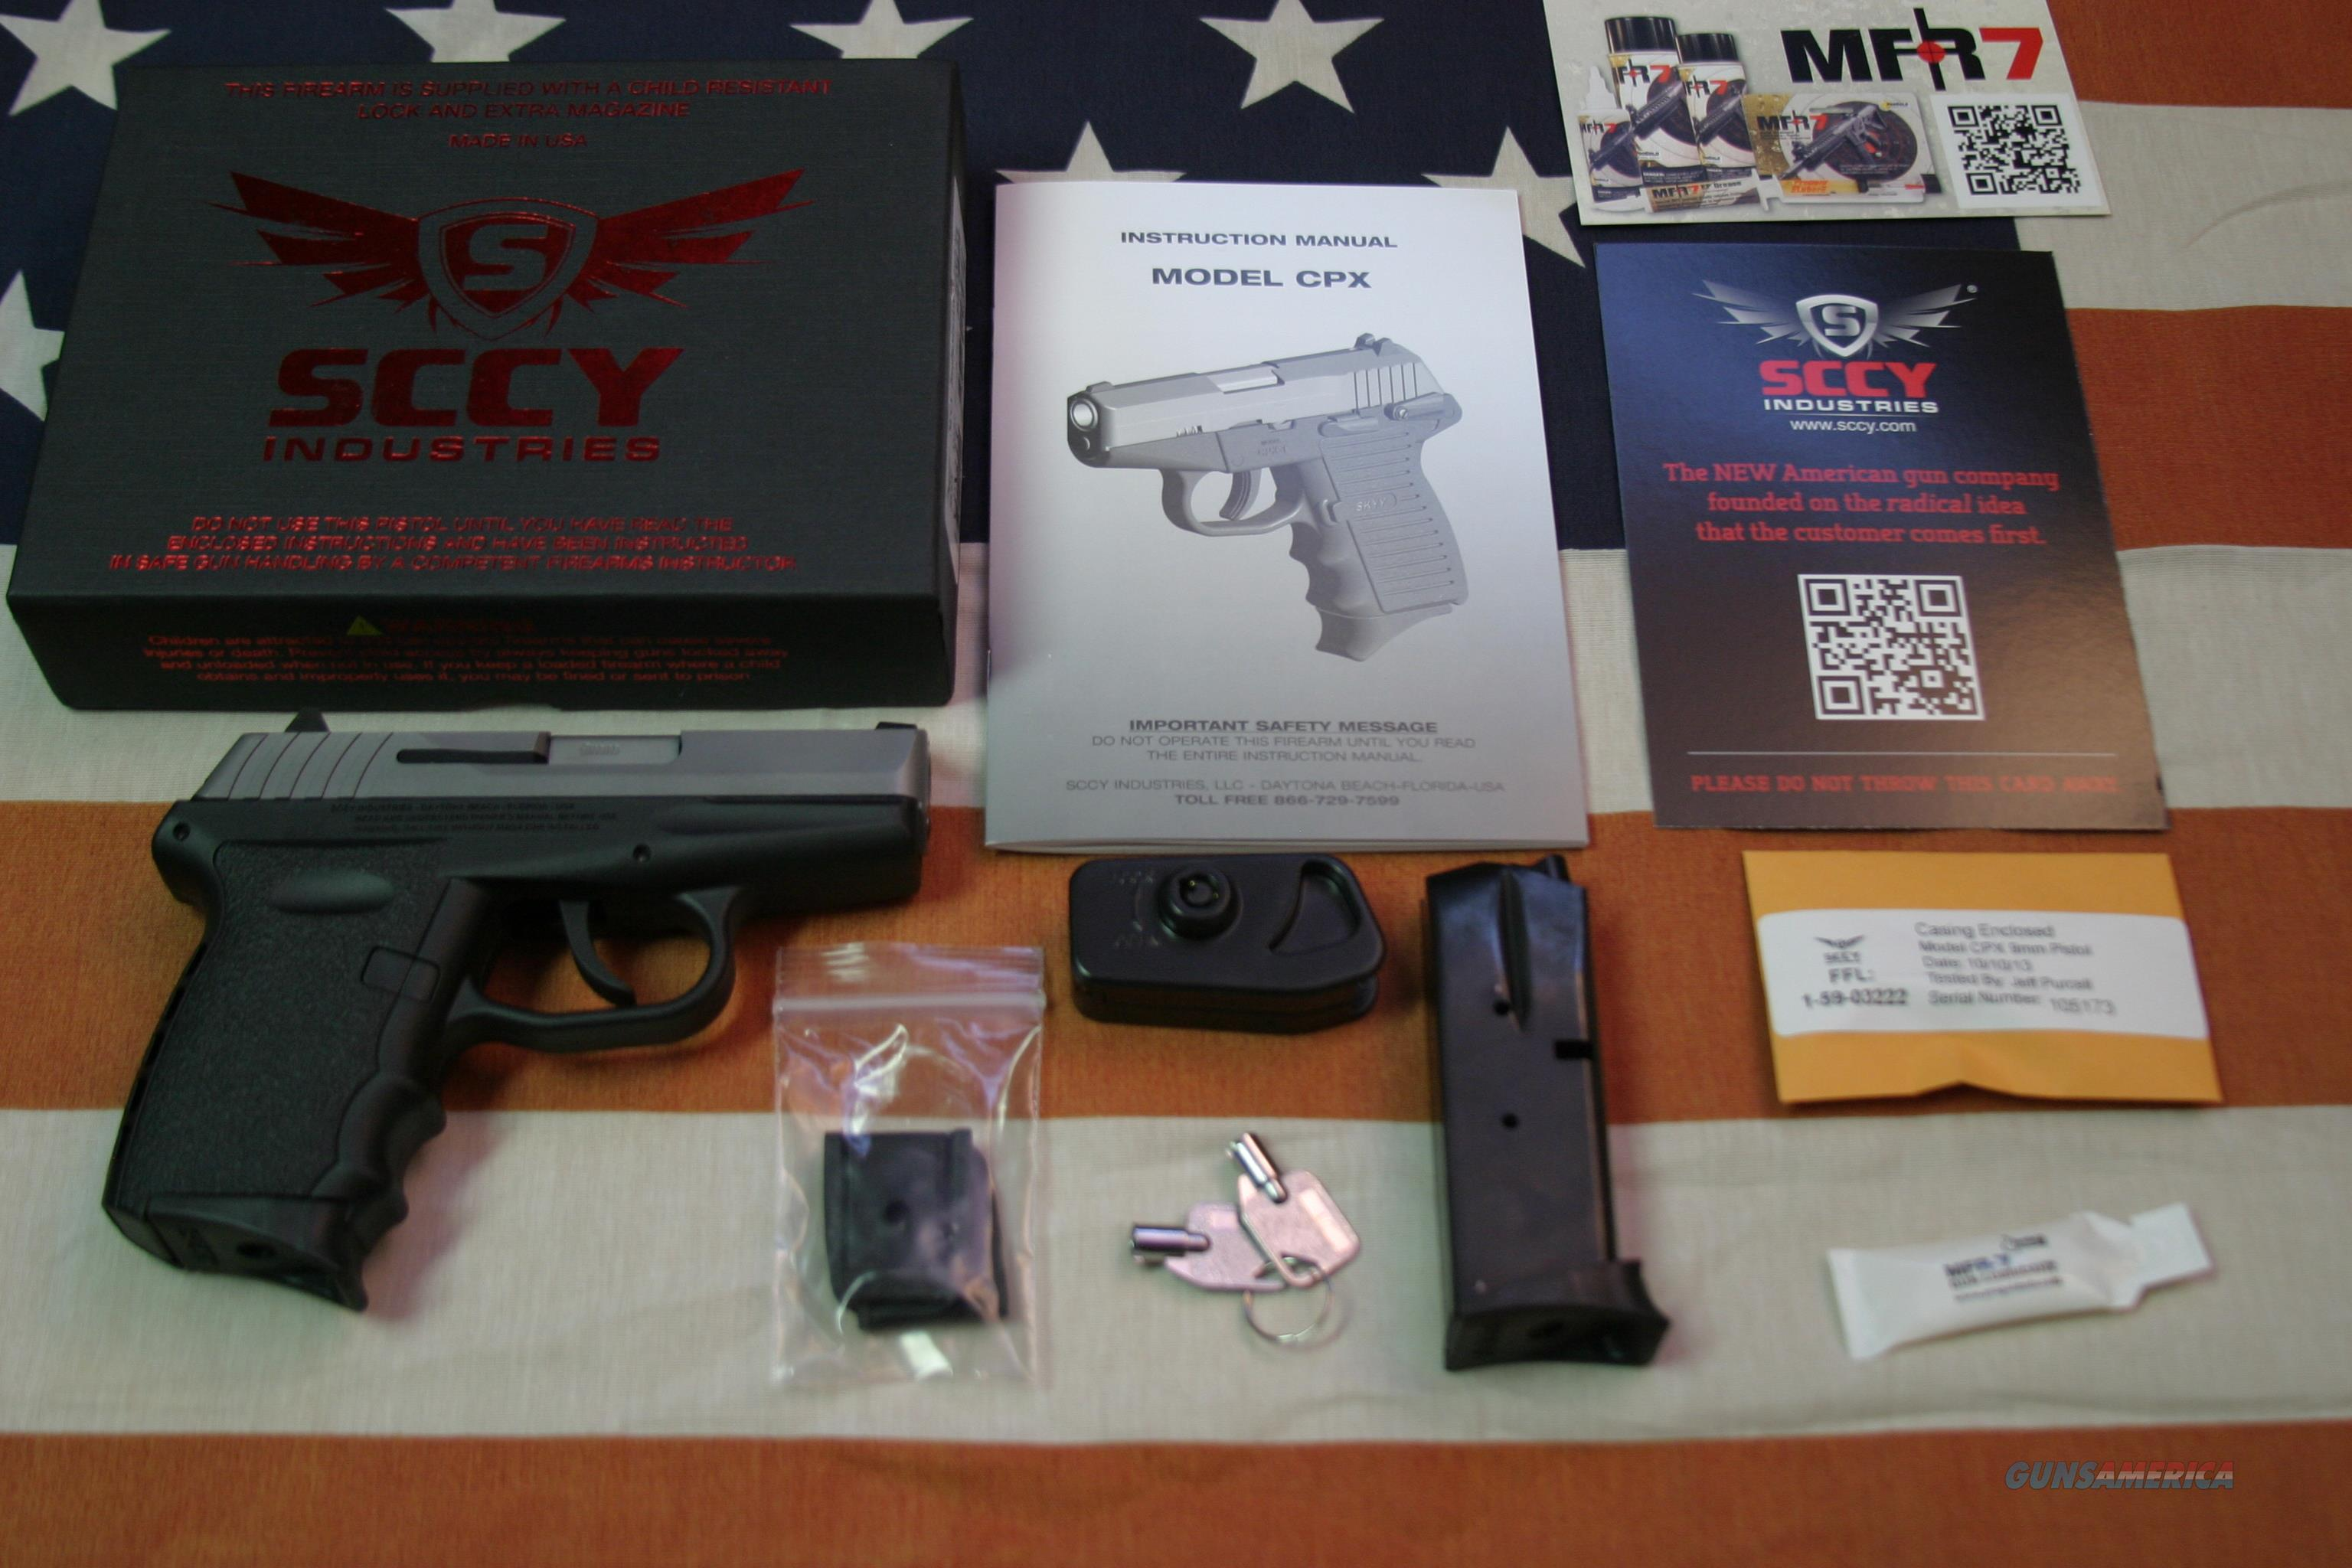 SCCY CPX2 Stainless Steel, 9mm, Brand New   Guns > Pistols > SCCY Pistols > CPX2